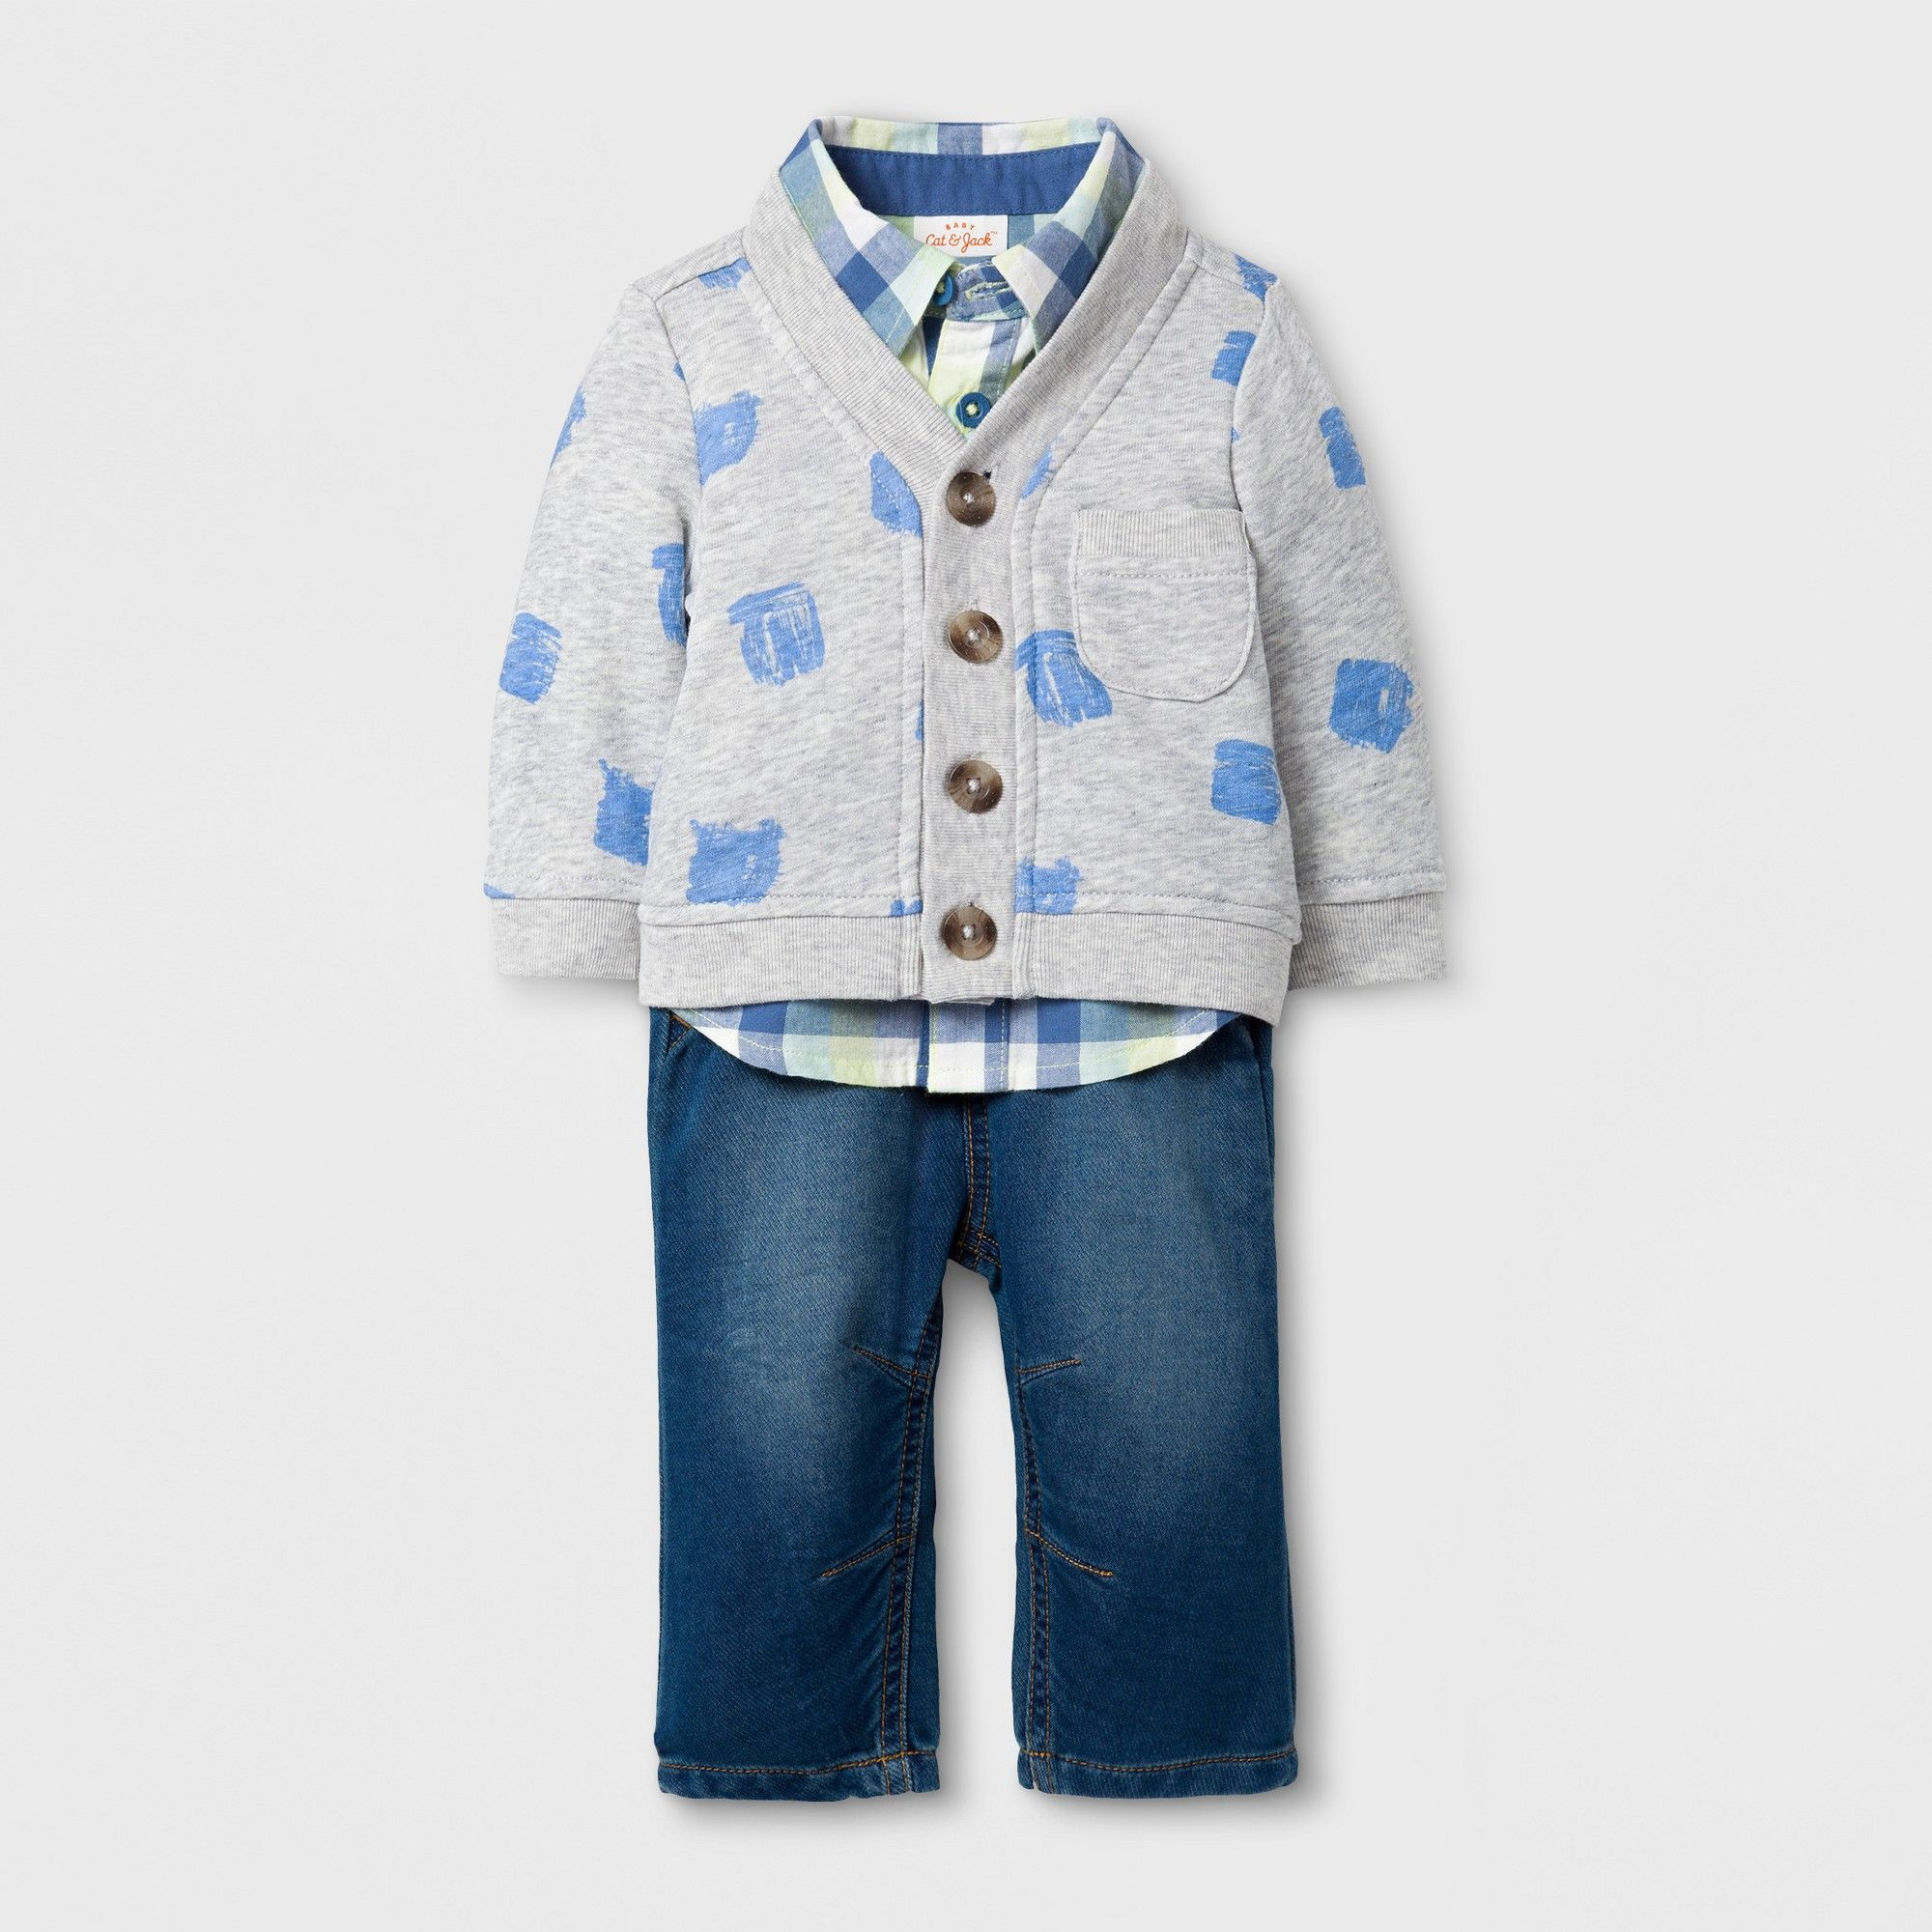 508e47527 Baby Boys  3pc Cardigan